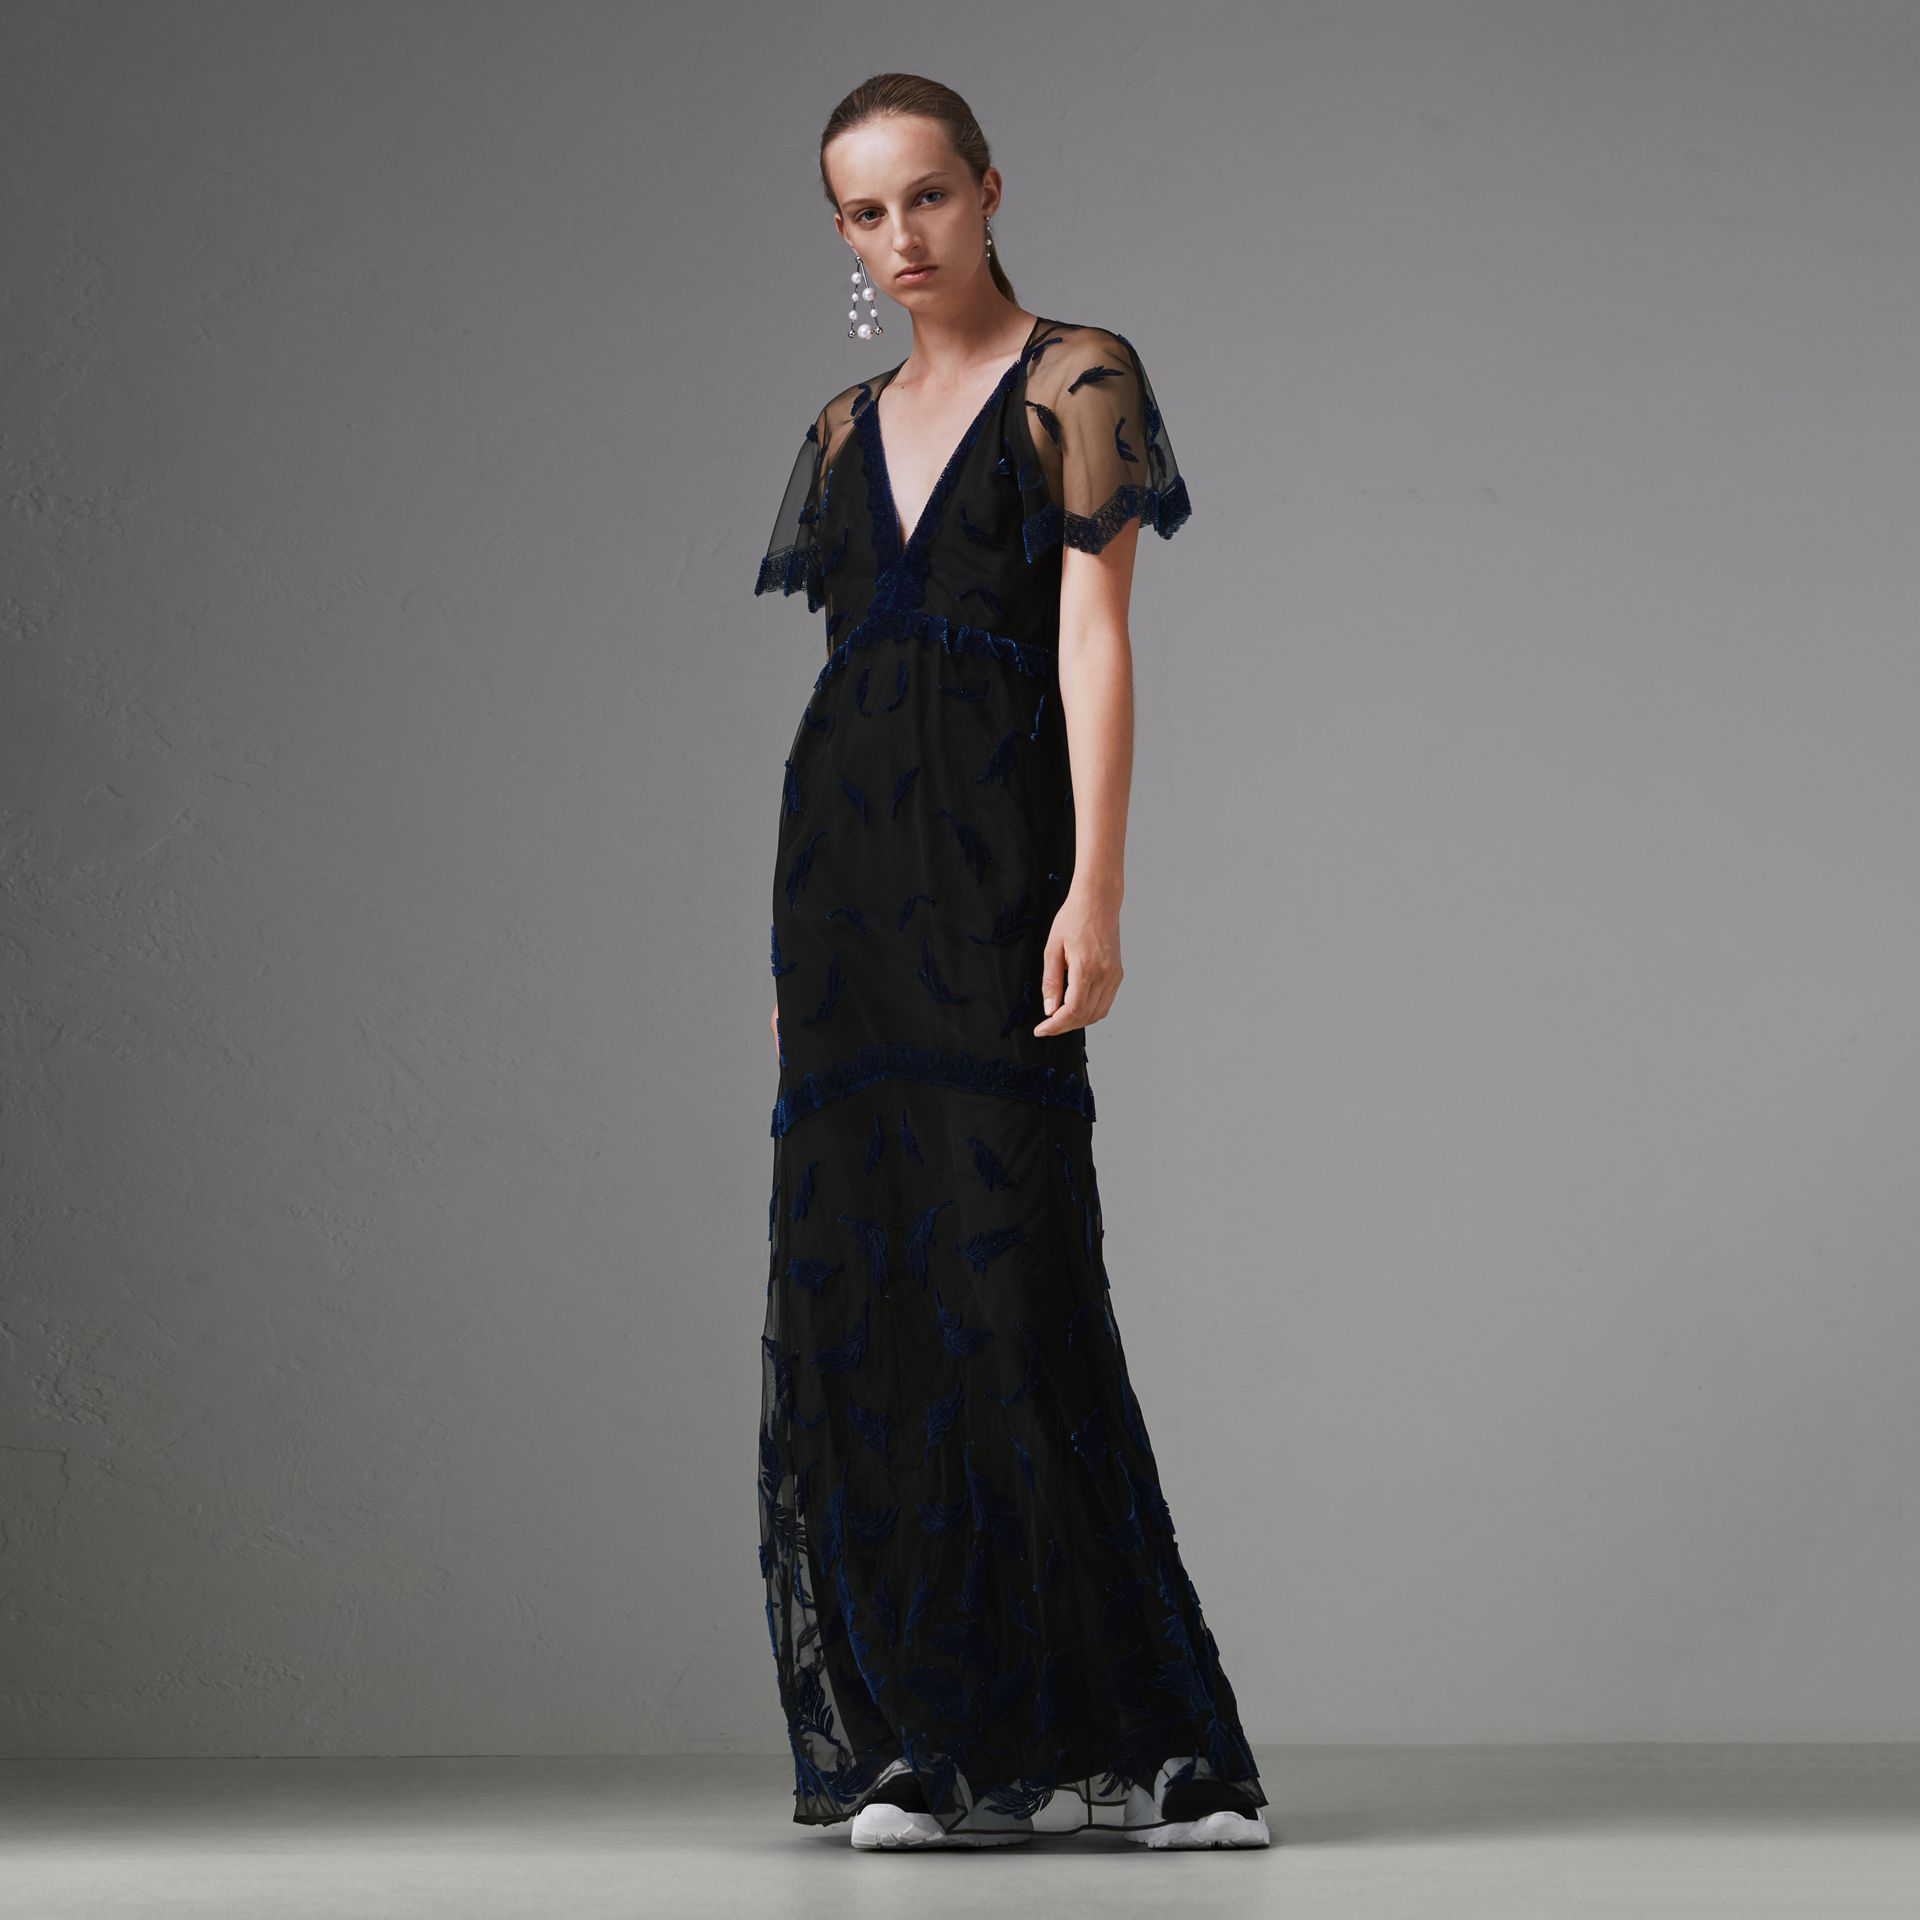 Velvet Leaf Cap-sleeve Gown in Black/blue - Women | Burberry Singapore - gallery image 4